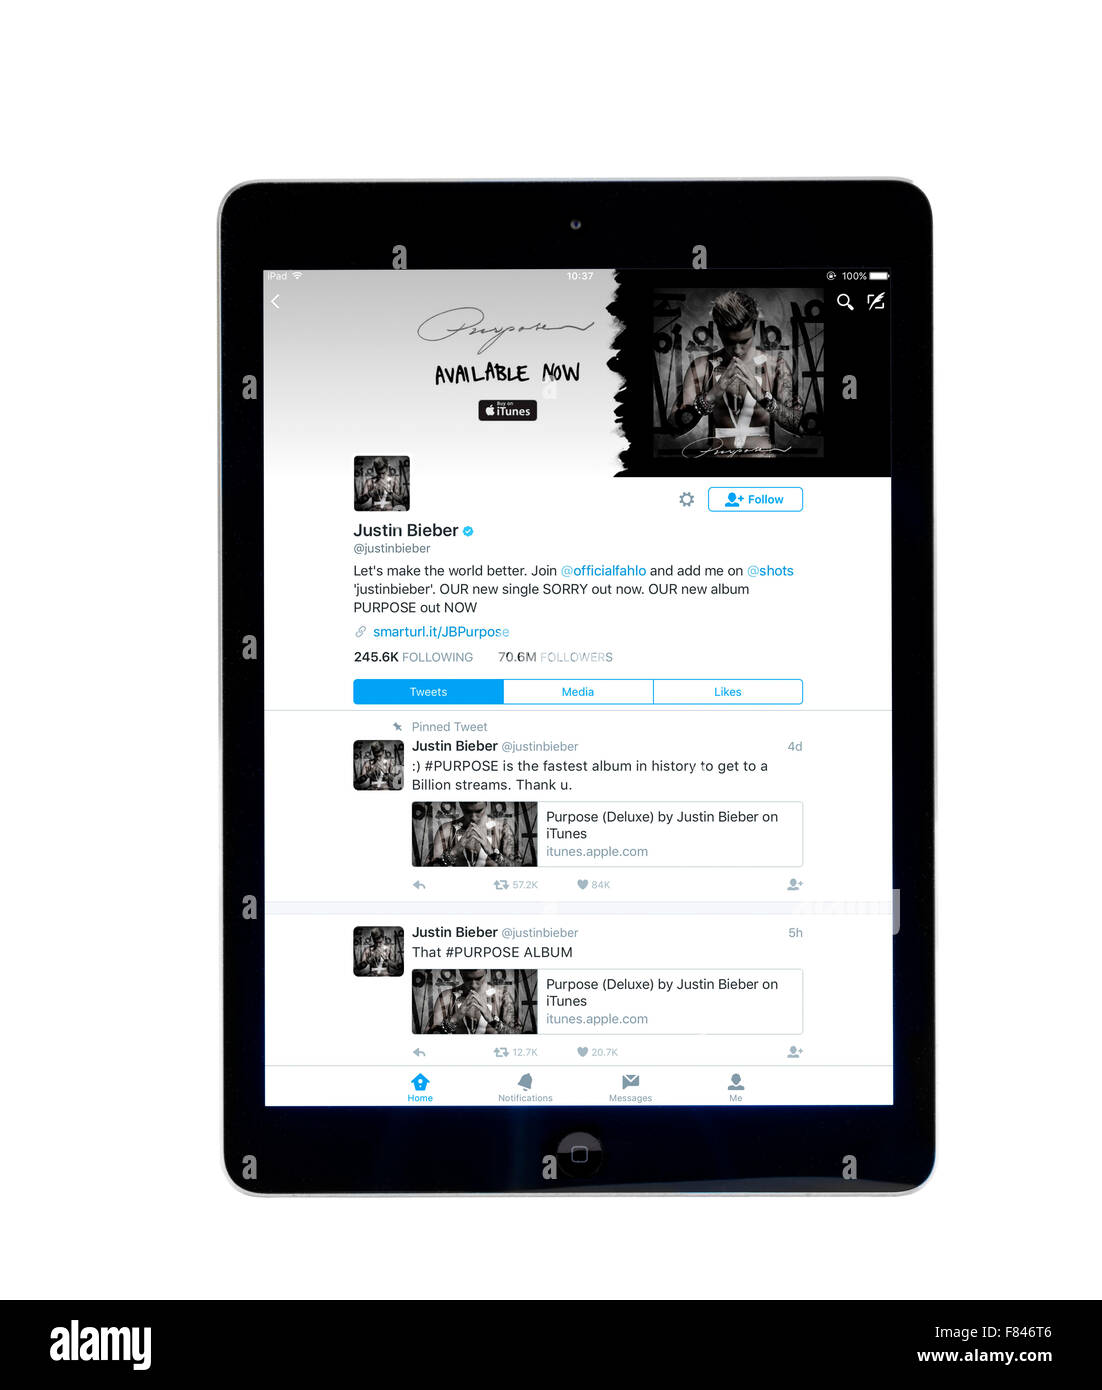 Justin Bieber sur la page d'accueil de l'application Twitter, vue sur un iPad Air Photo Stock